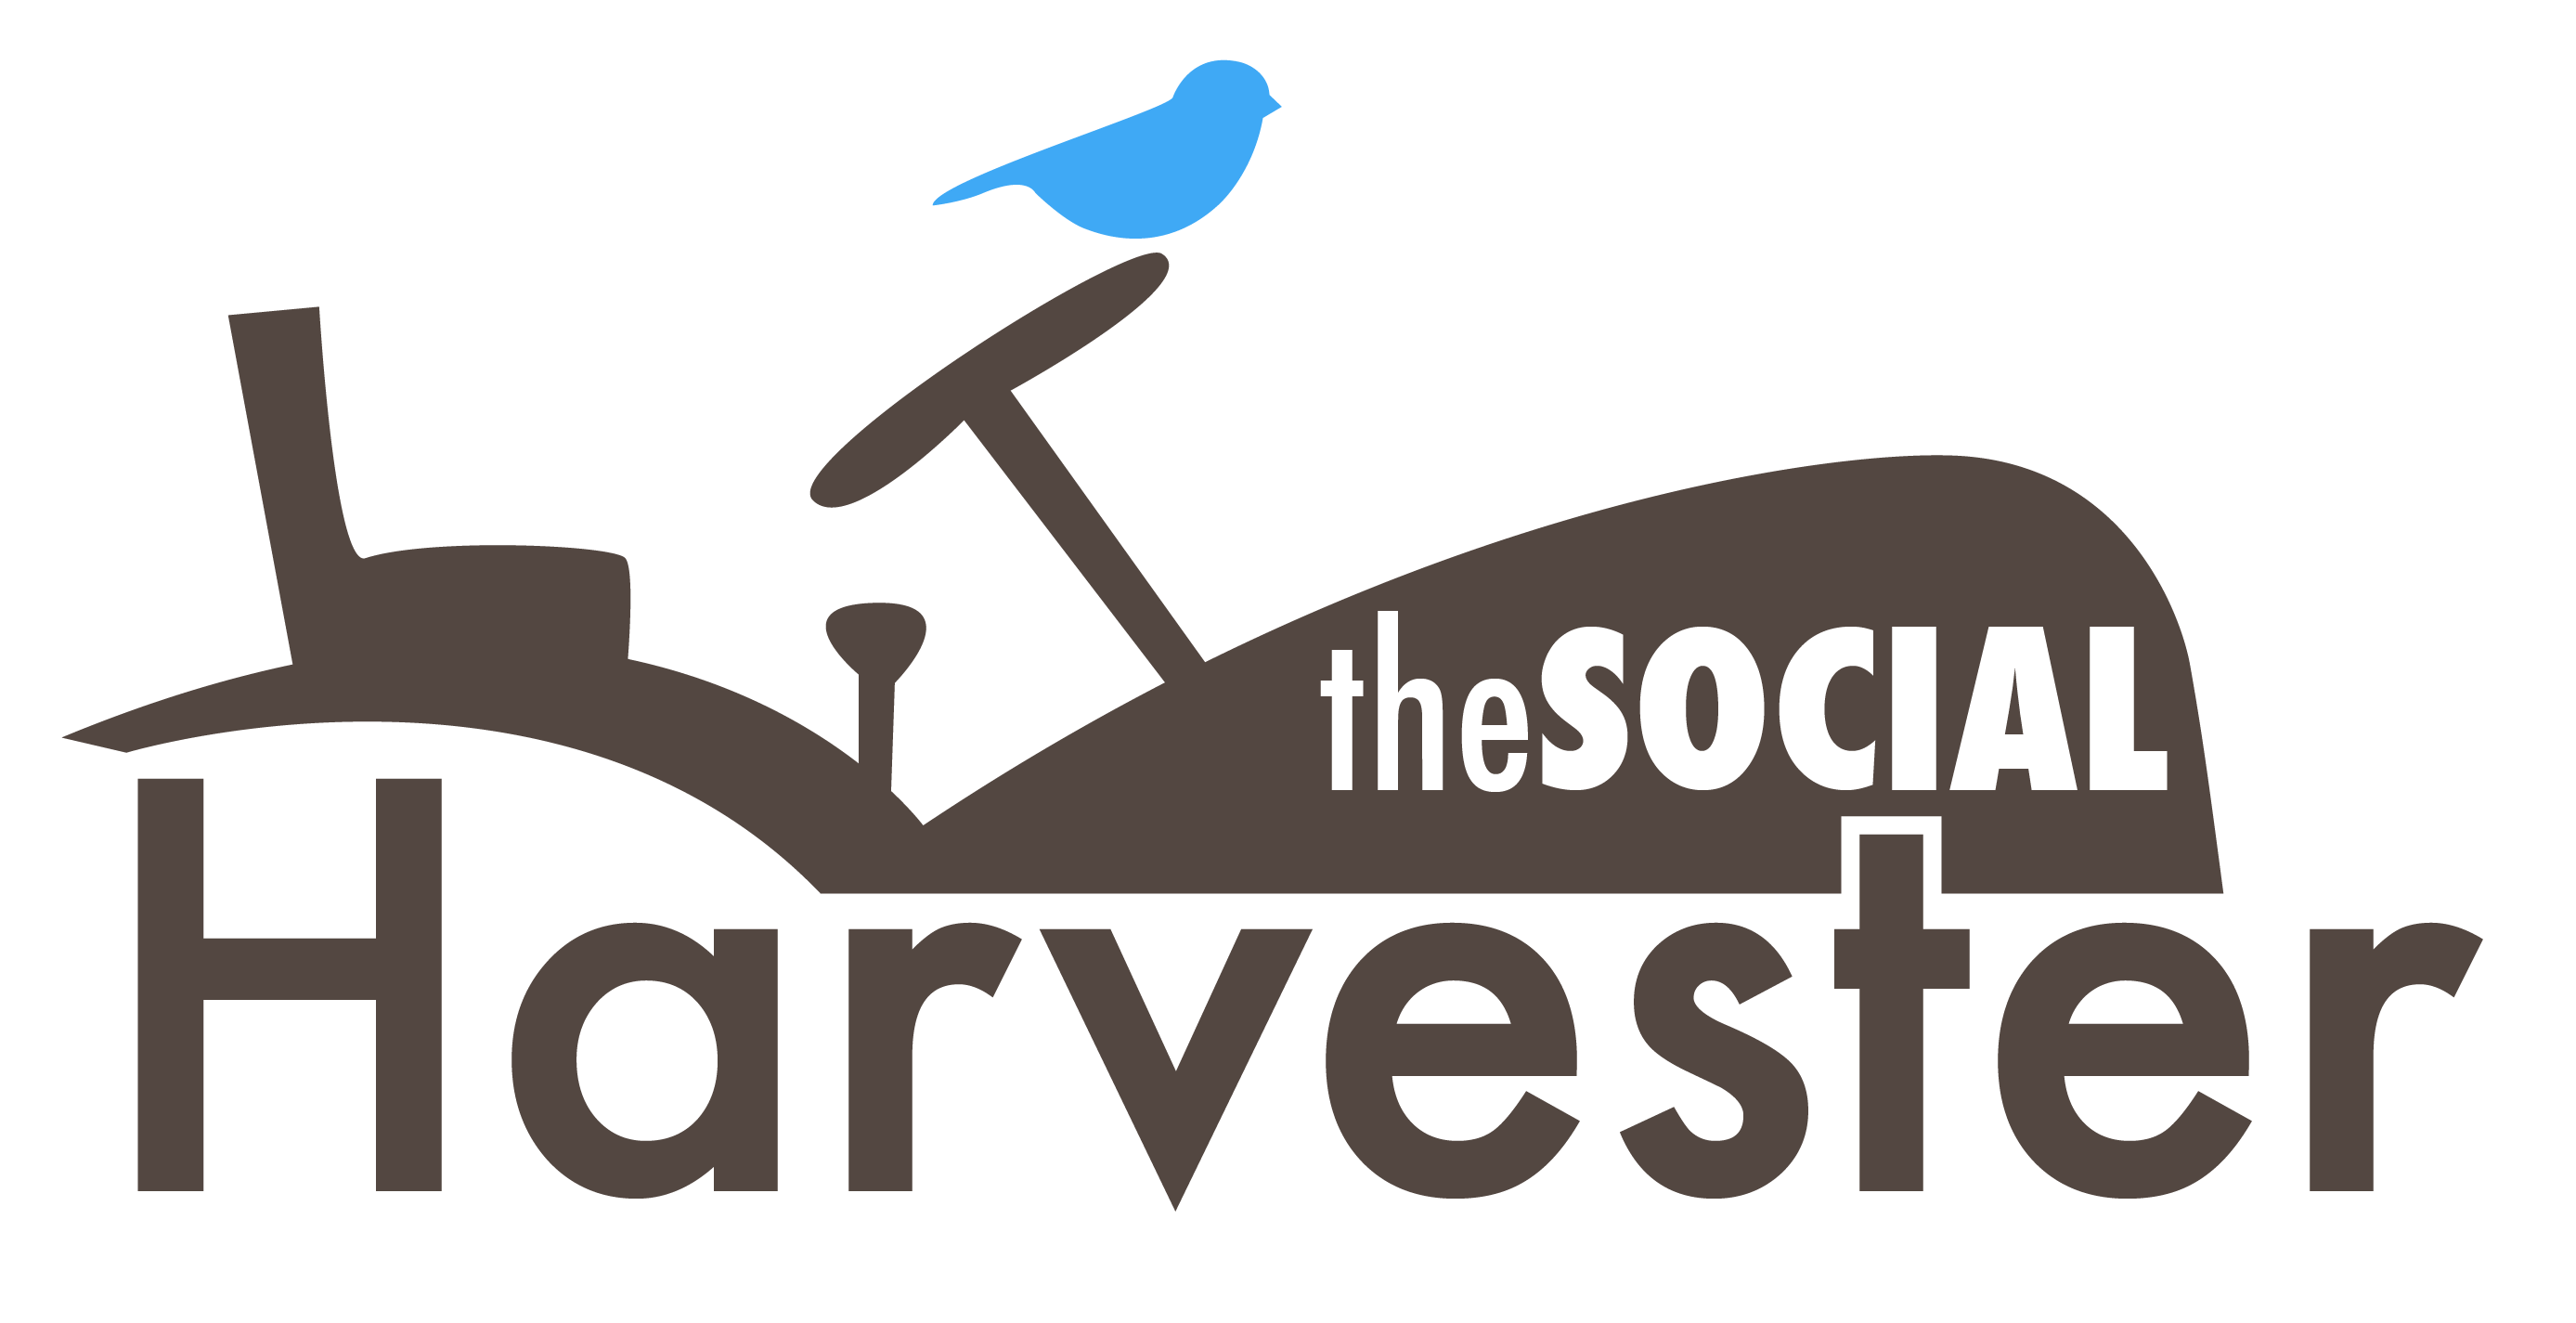 Harvester_logo_brown-04